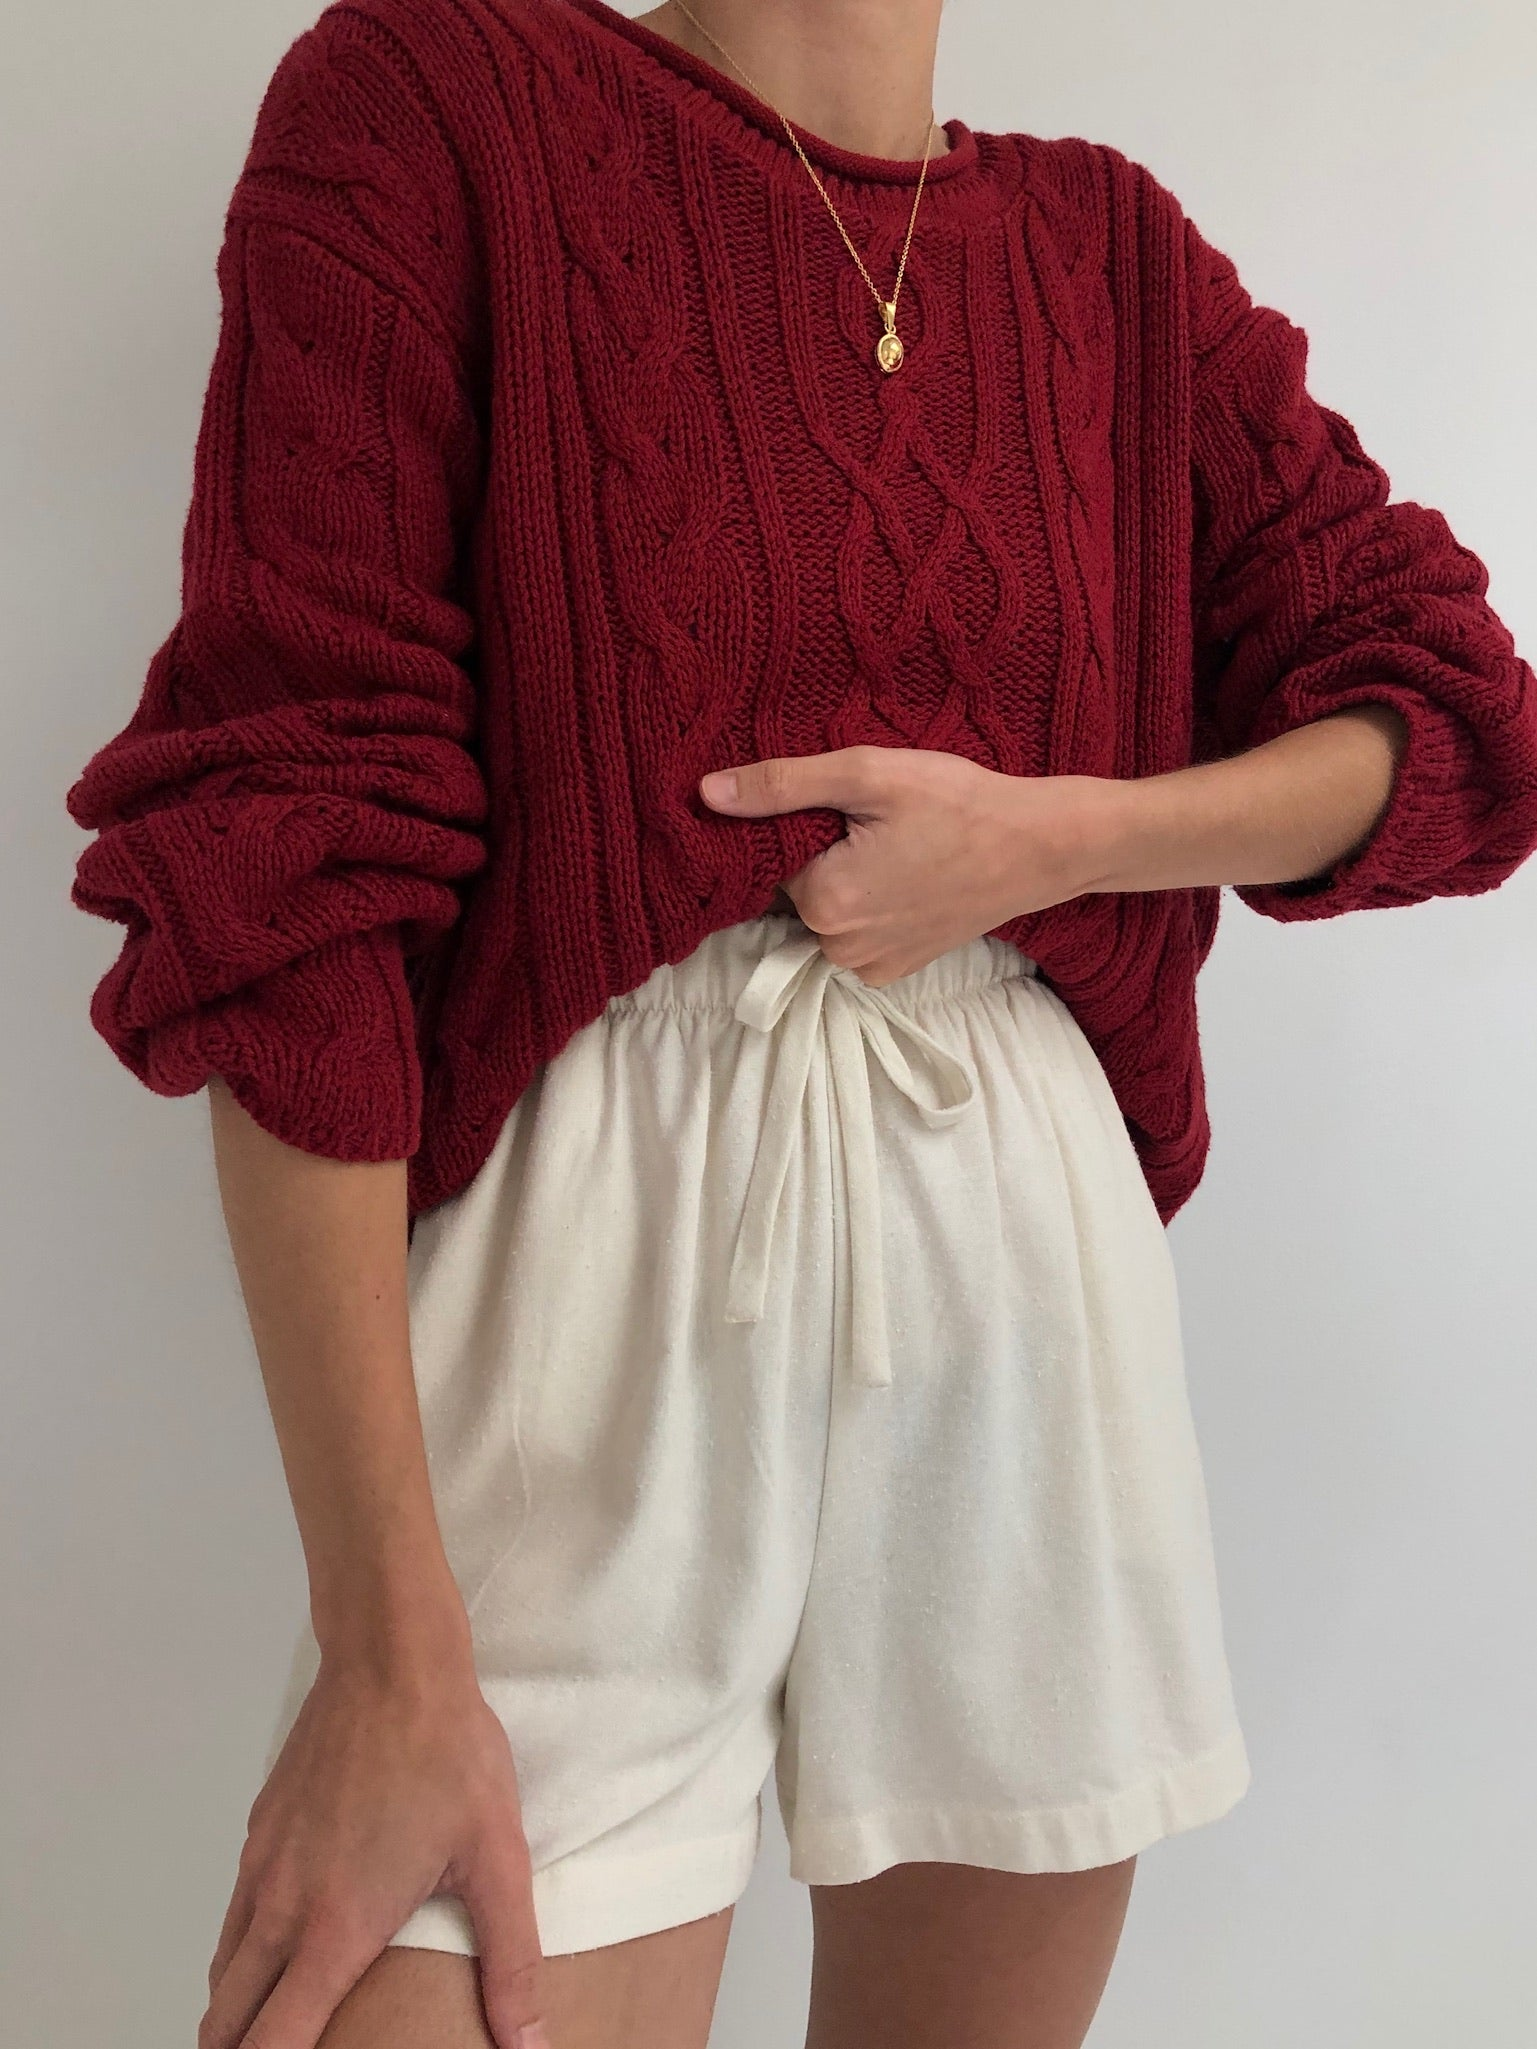 Vintage Cranberry Patterned Knit Sweater